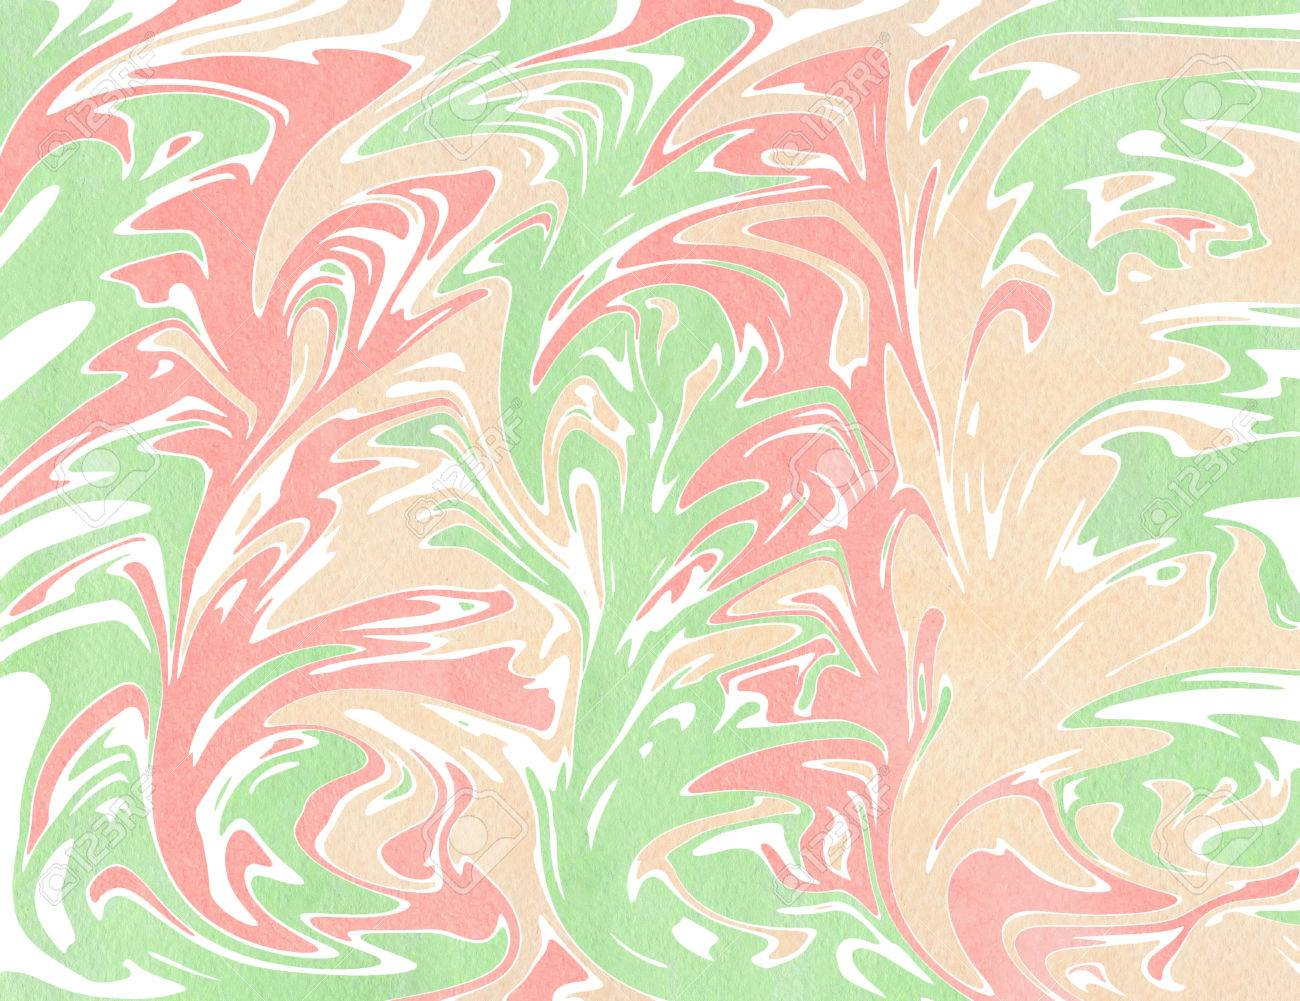 Abstract Light Pink Beige And Mint Green Watercolor Background